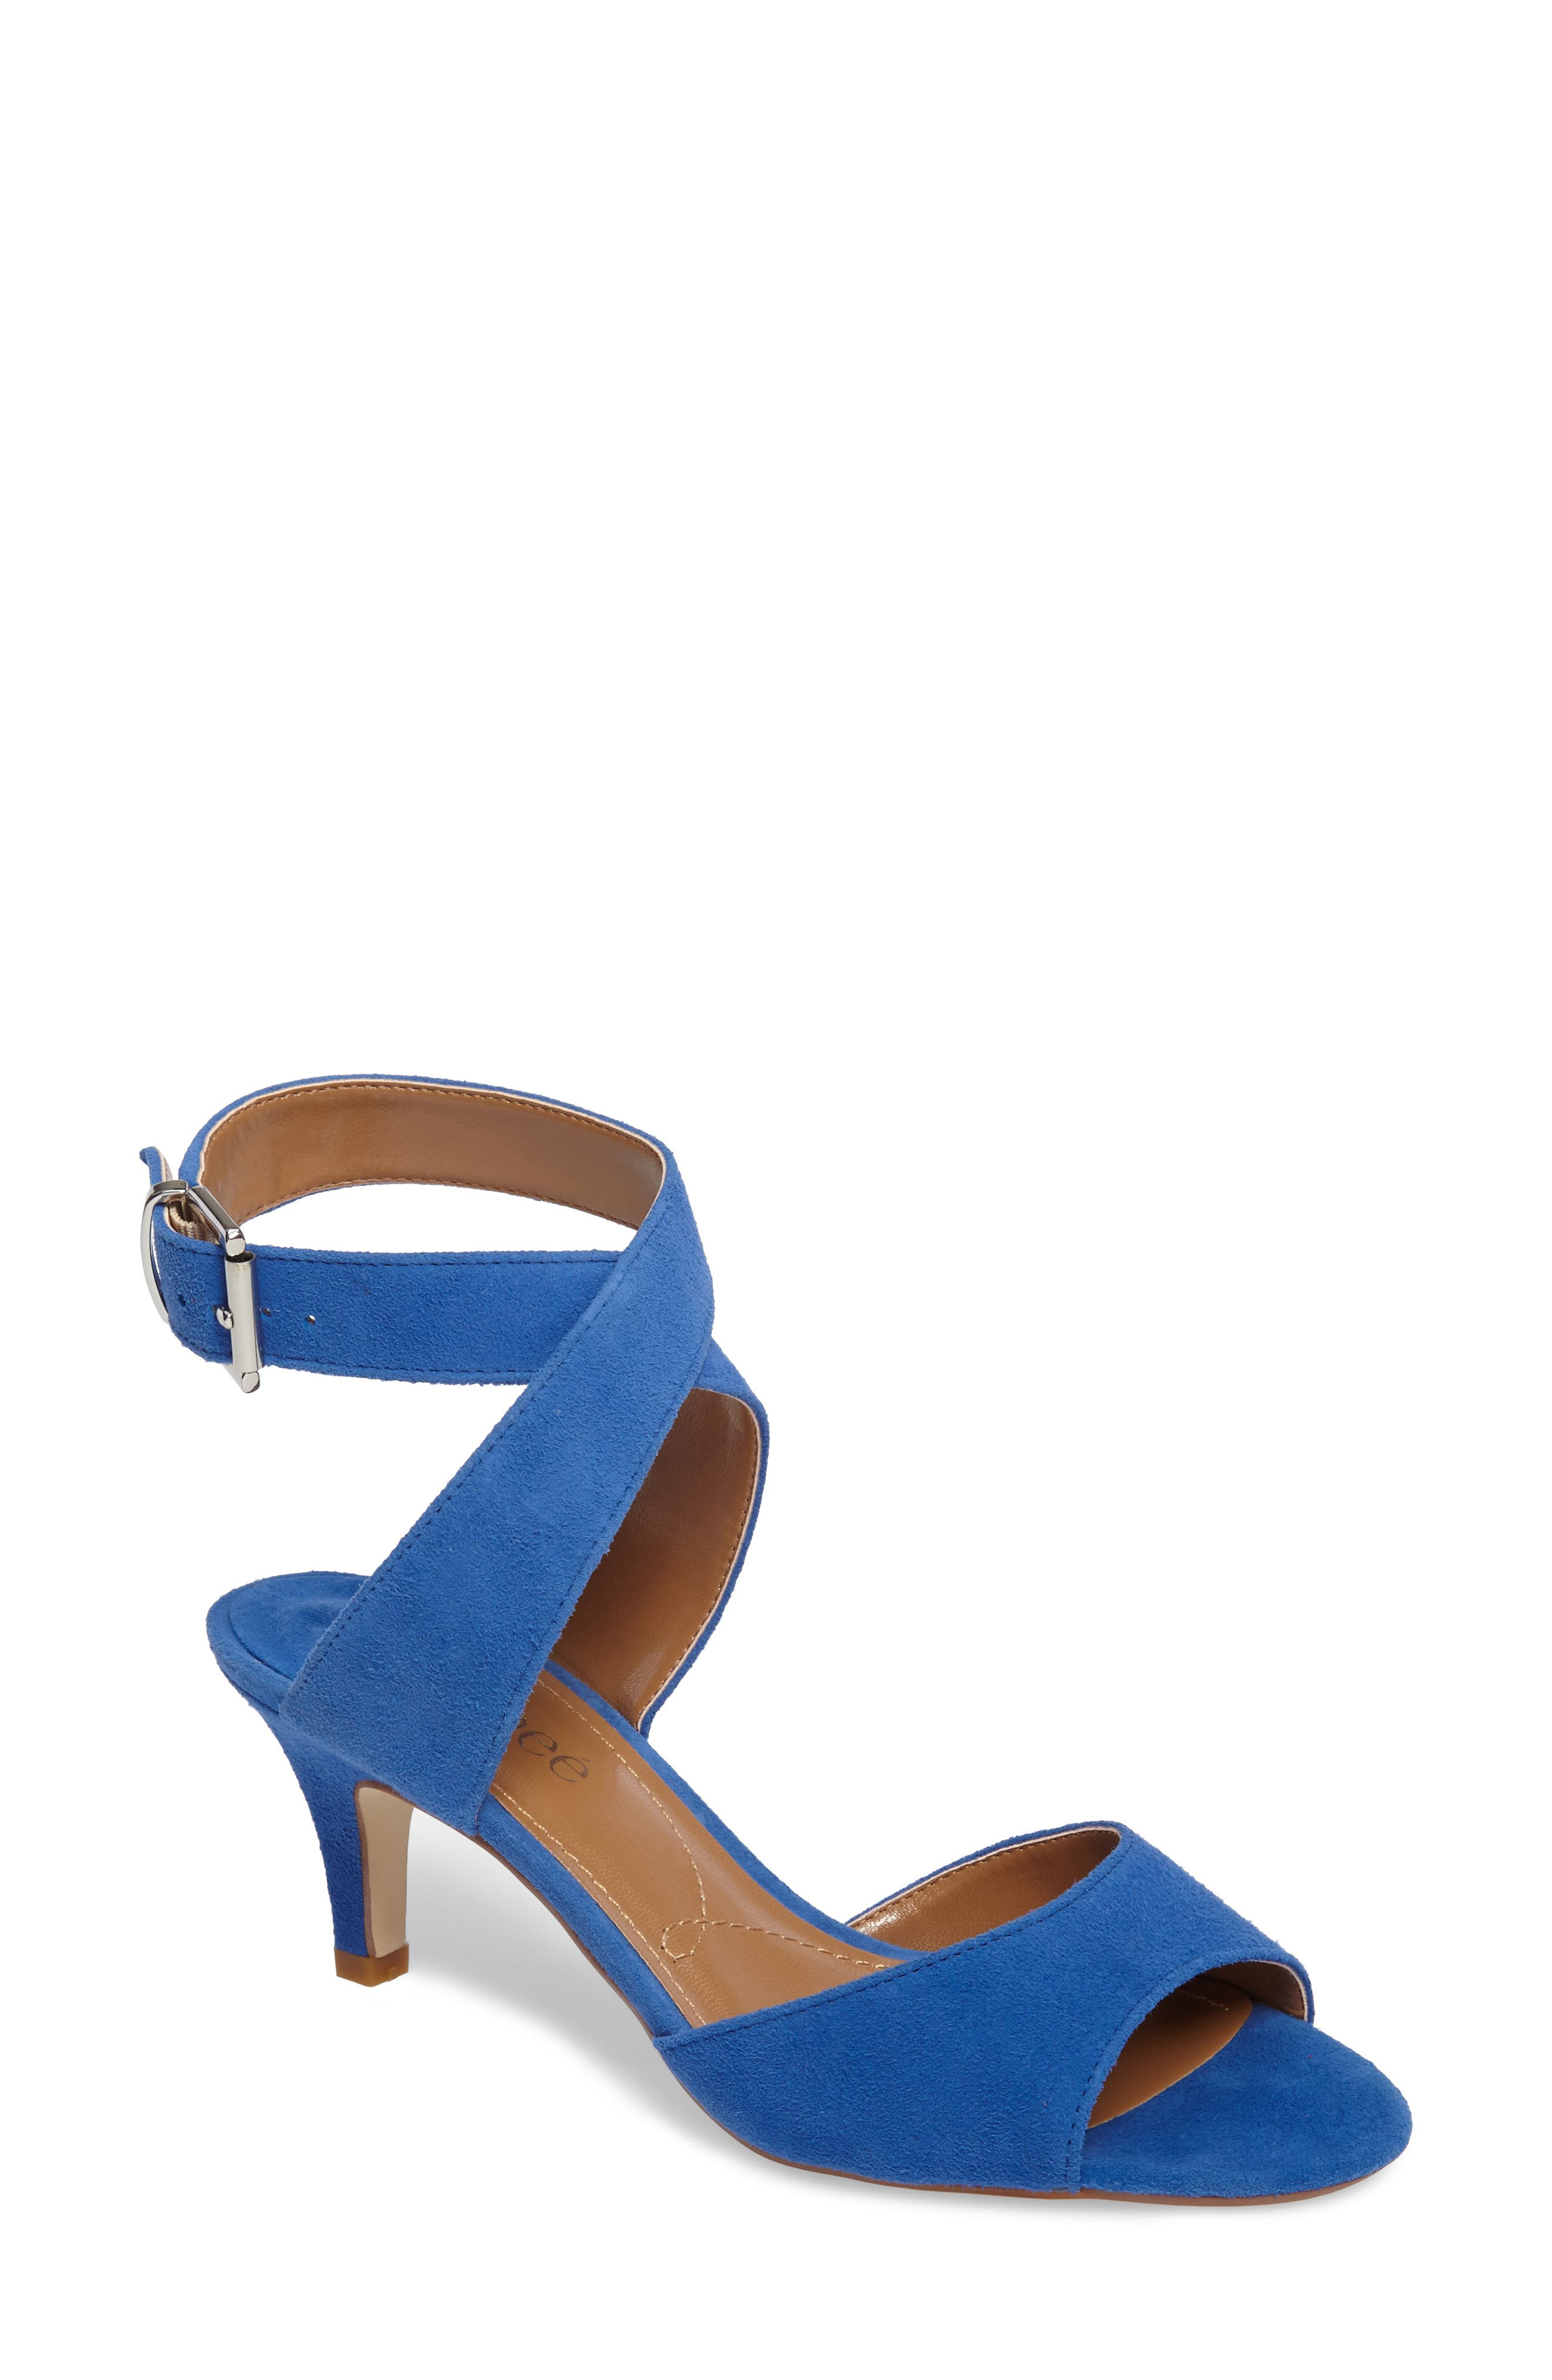 'Soncino' Ankle Strap Sandal,                             Main thumbnail 1, color,                             BLUE FABRIC